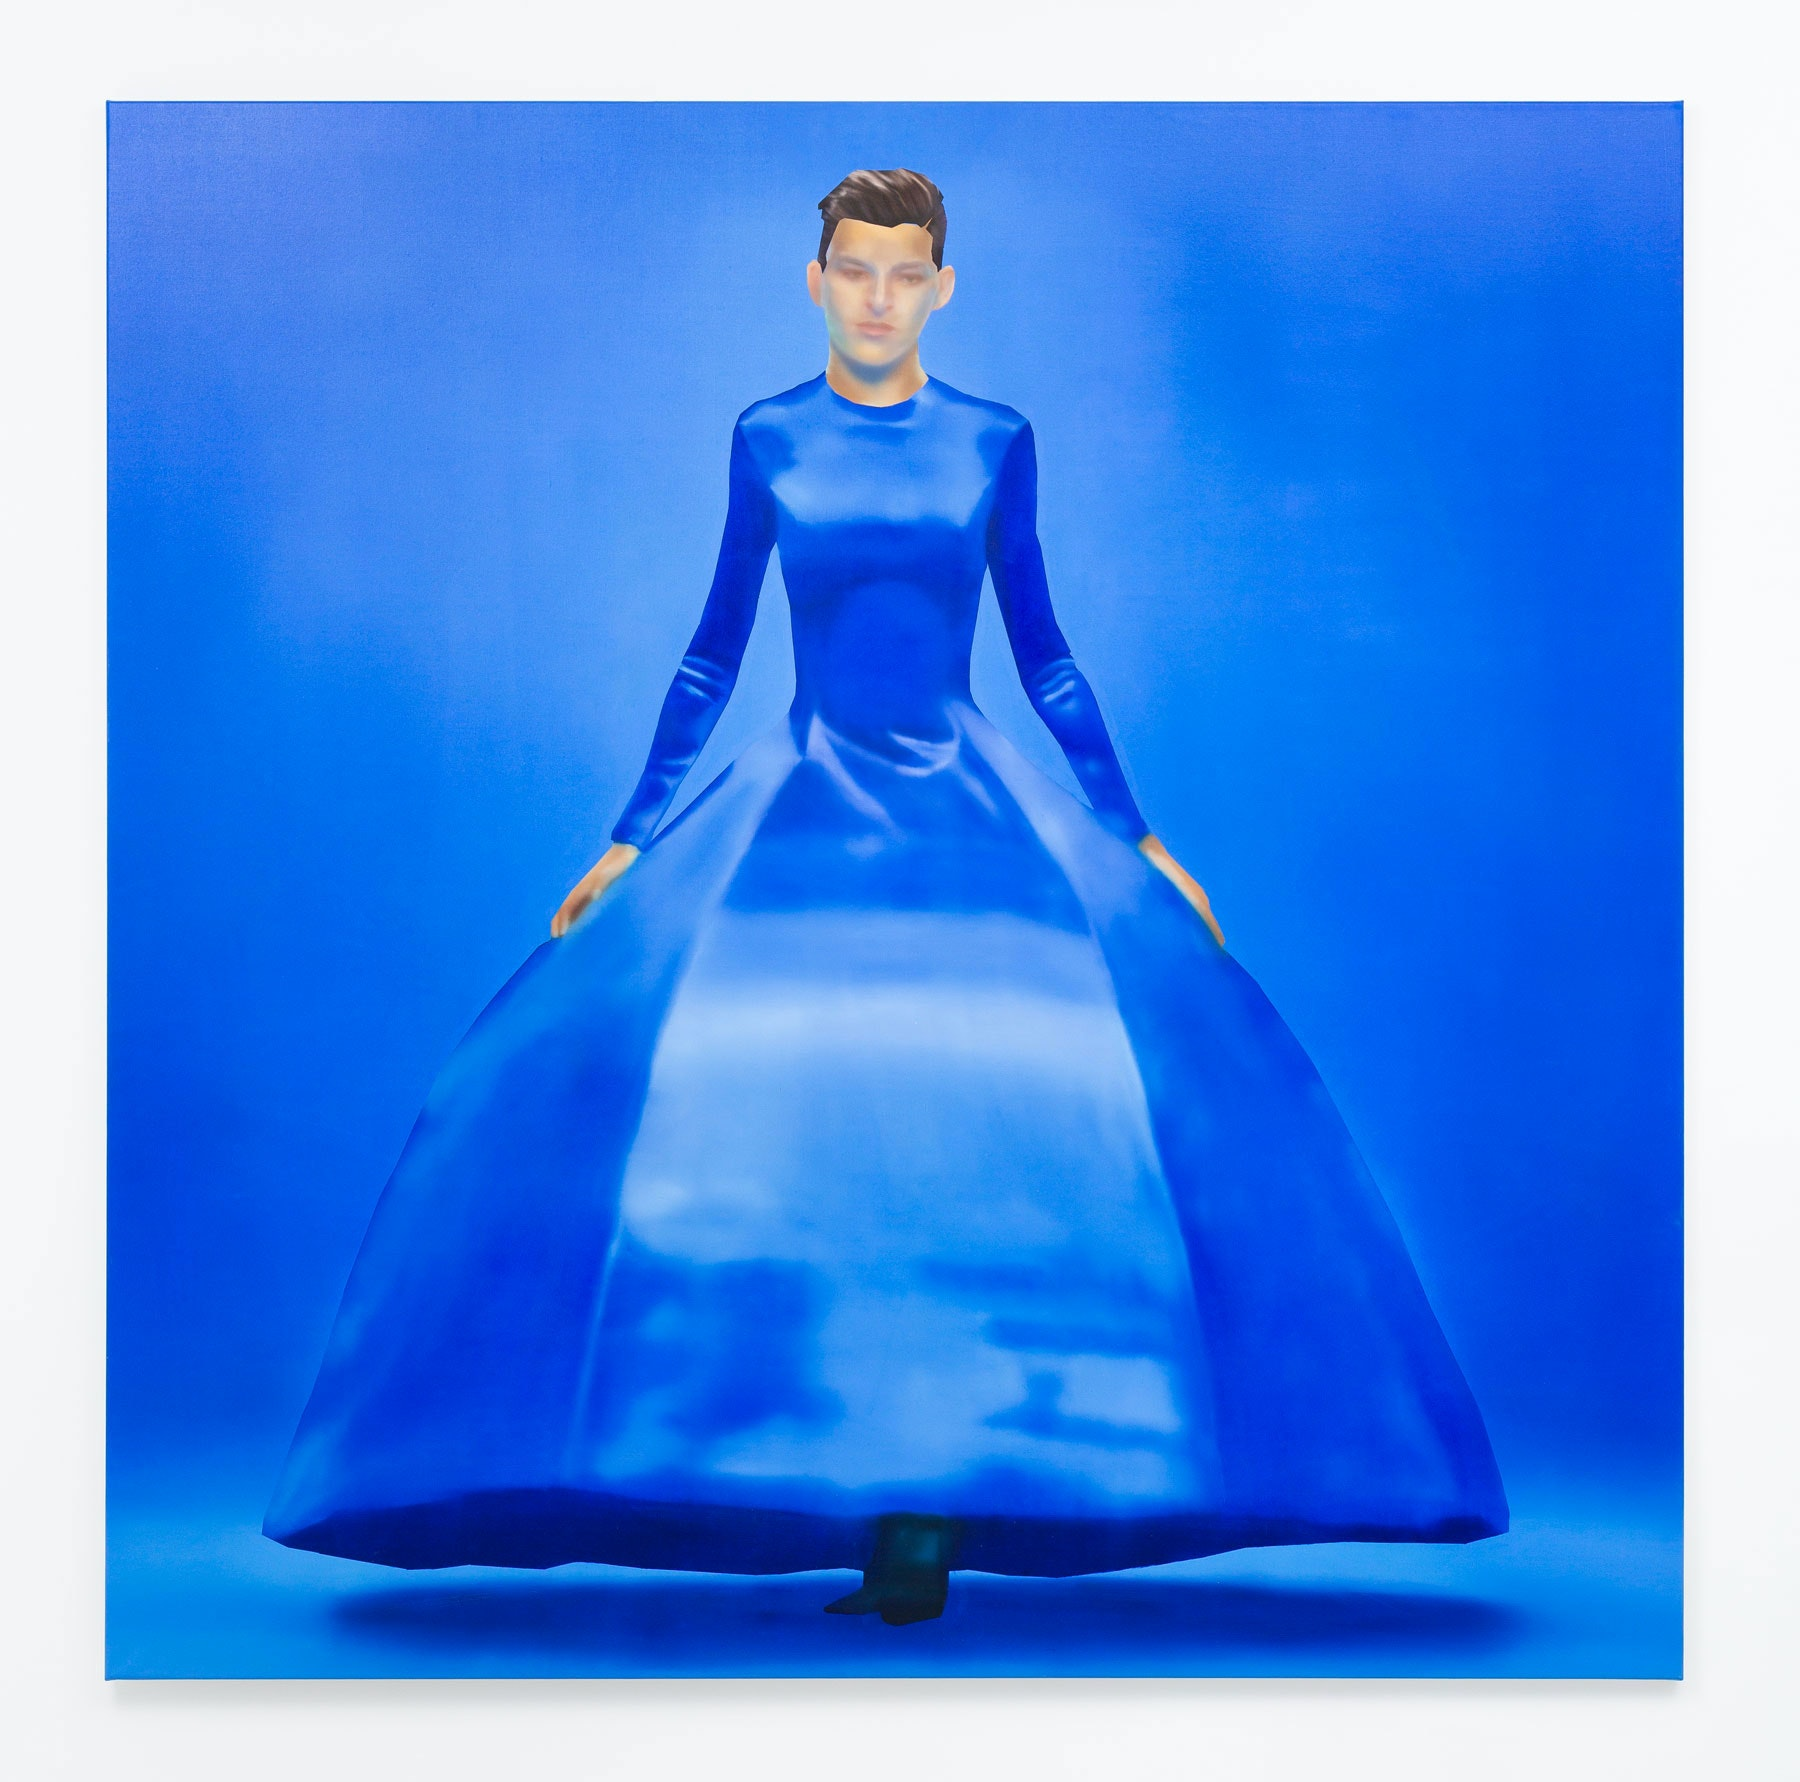 Rute Merk, <em>BALENCIAGA, SS20, Look 89</em>, 2019. Oil on canvas, 86 1/2 x 86 1/2 inches. Courtesy the artist and Downs & Ross, New York. Photo: Daniel Terna.